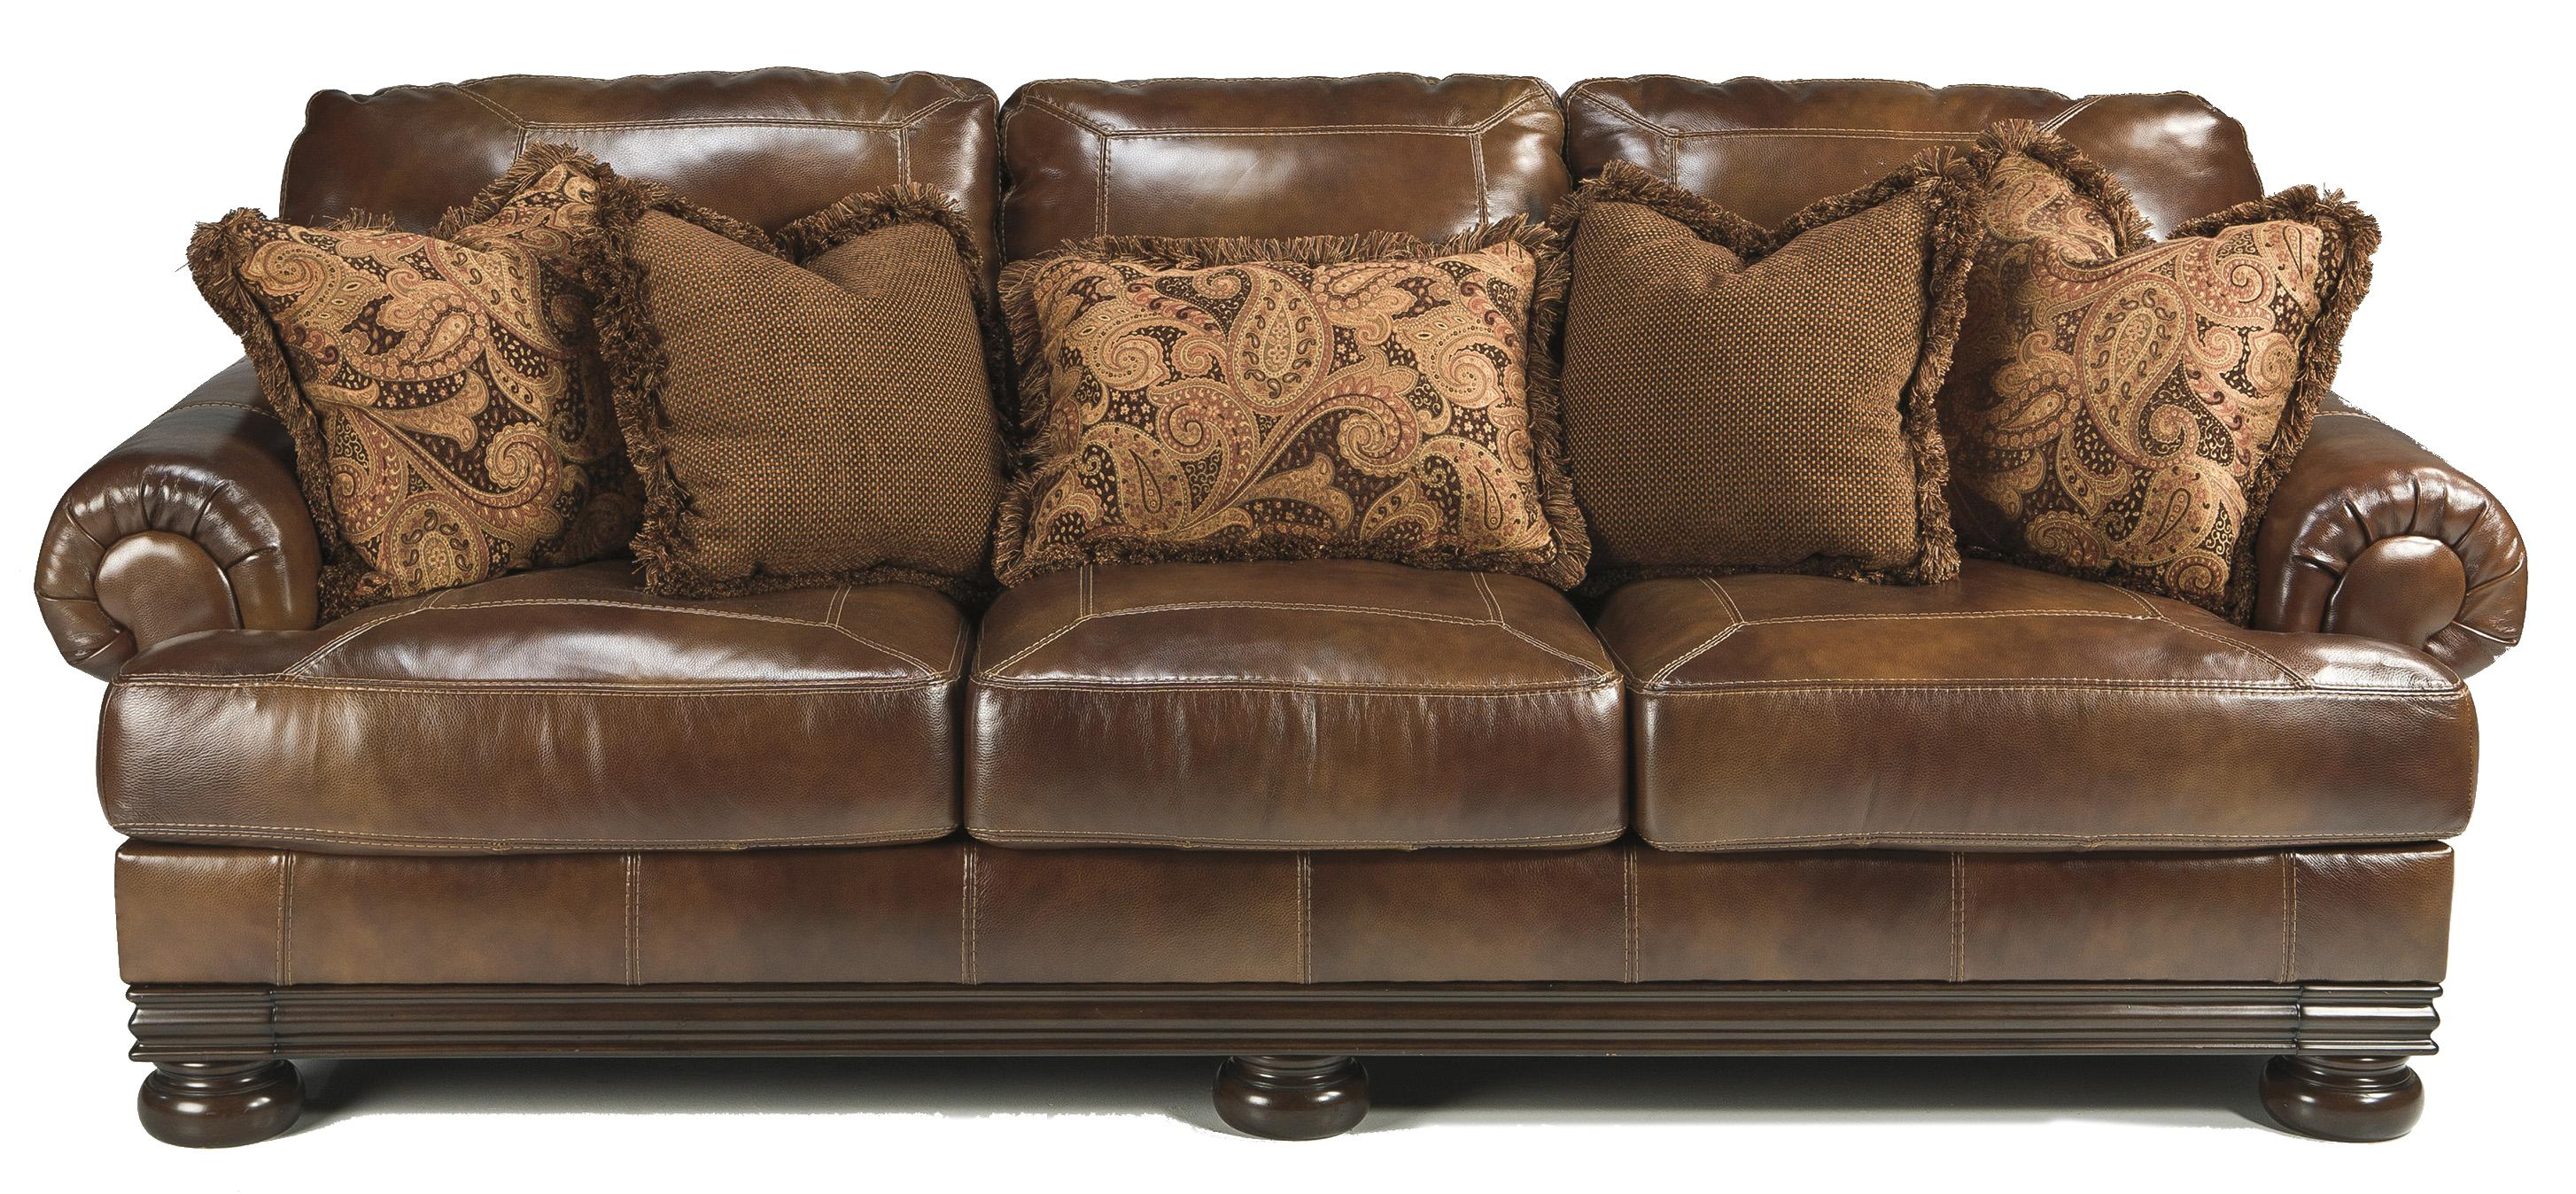 Signature Design by Ashley Hutcherson Traditional Sofa - Item Number: 2110038